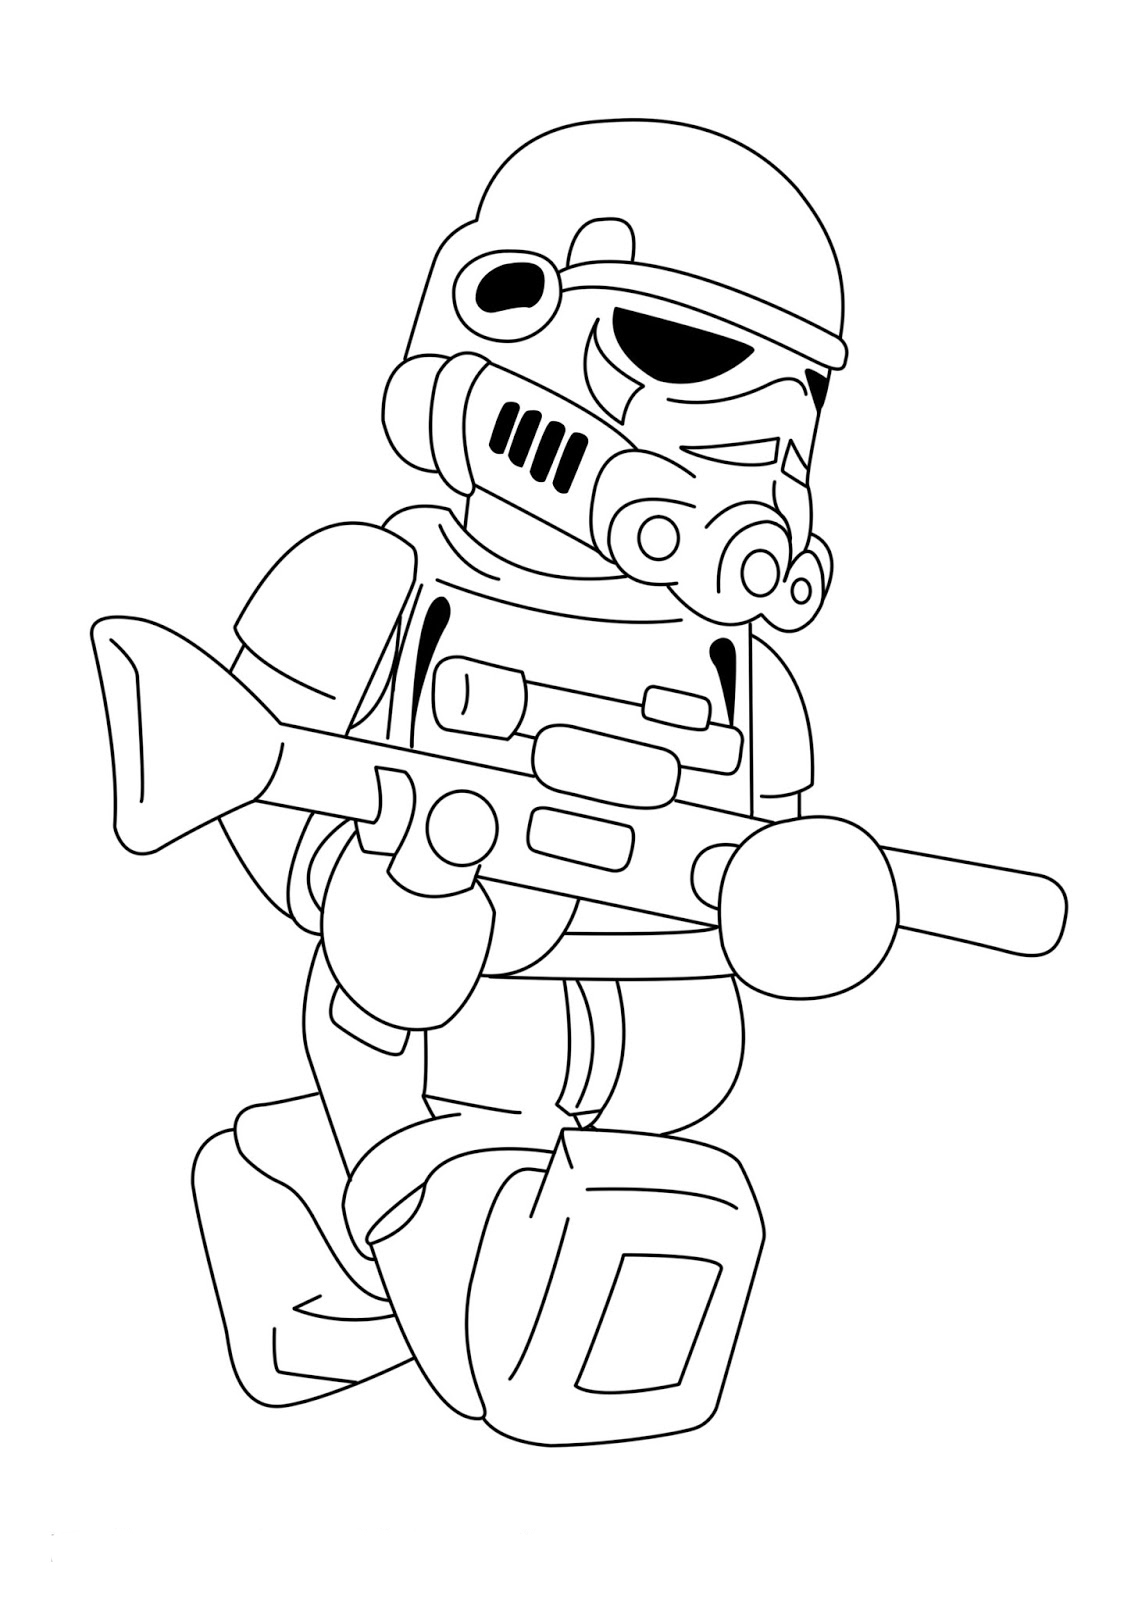 lego star wars pictures to colour lego star wars coloring pages to pictures wars star lego colour